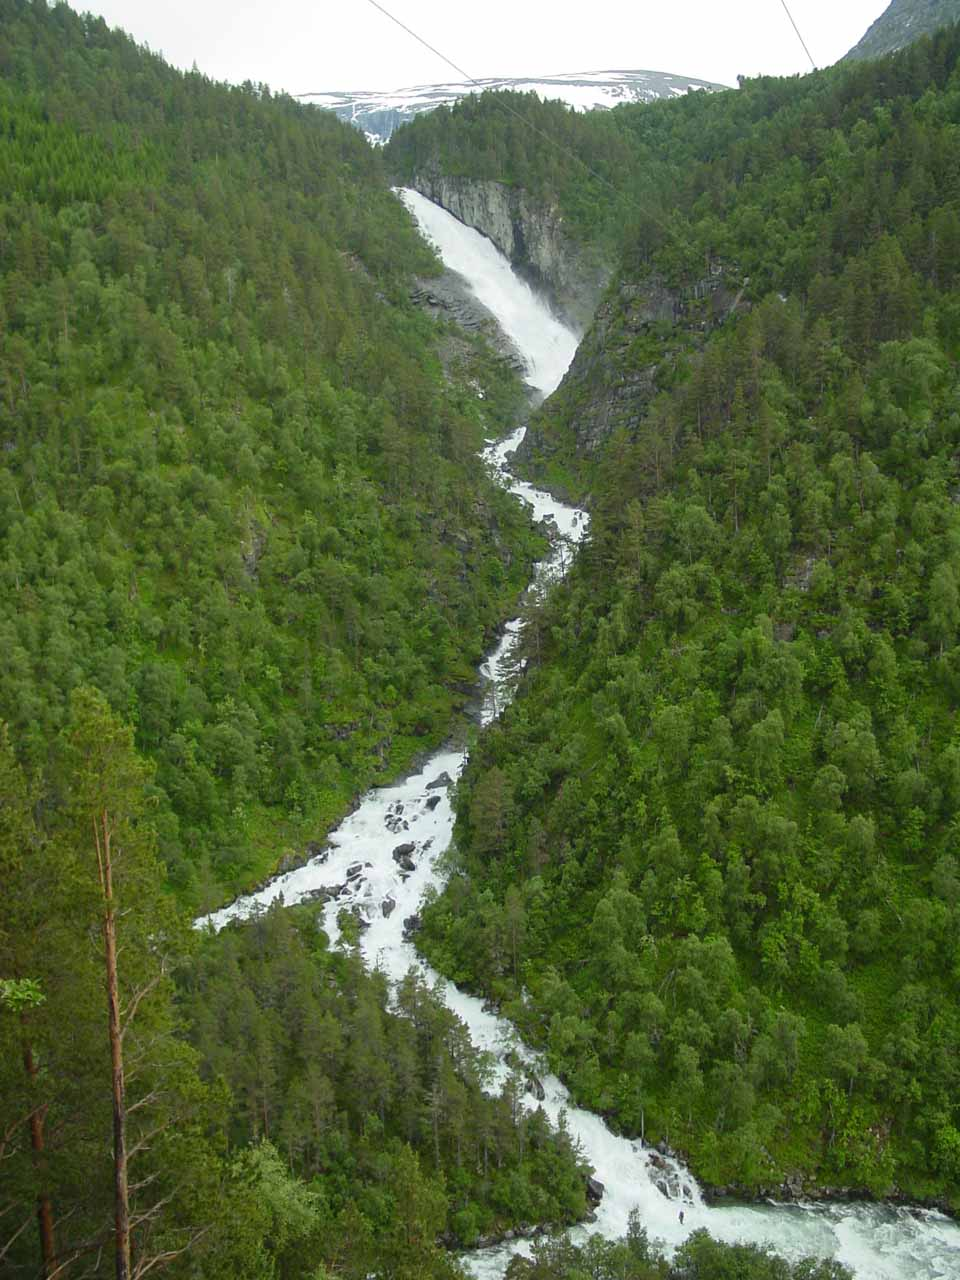 This was the full view of the cascading Reppdalsfossen beneath some power lines as I was hiking towards Svøufossen